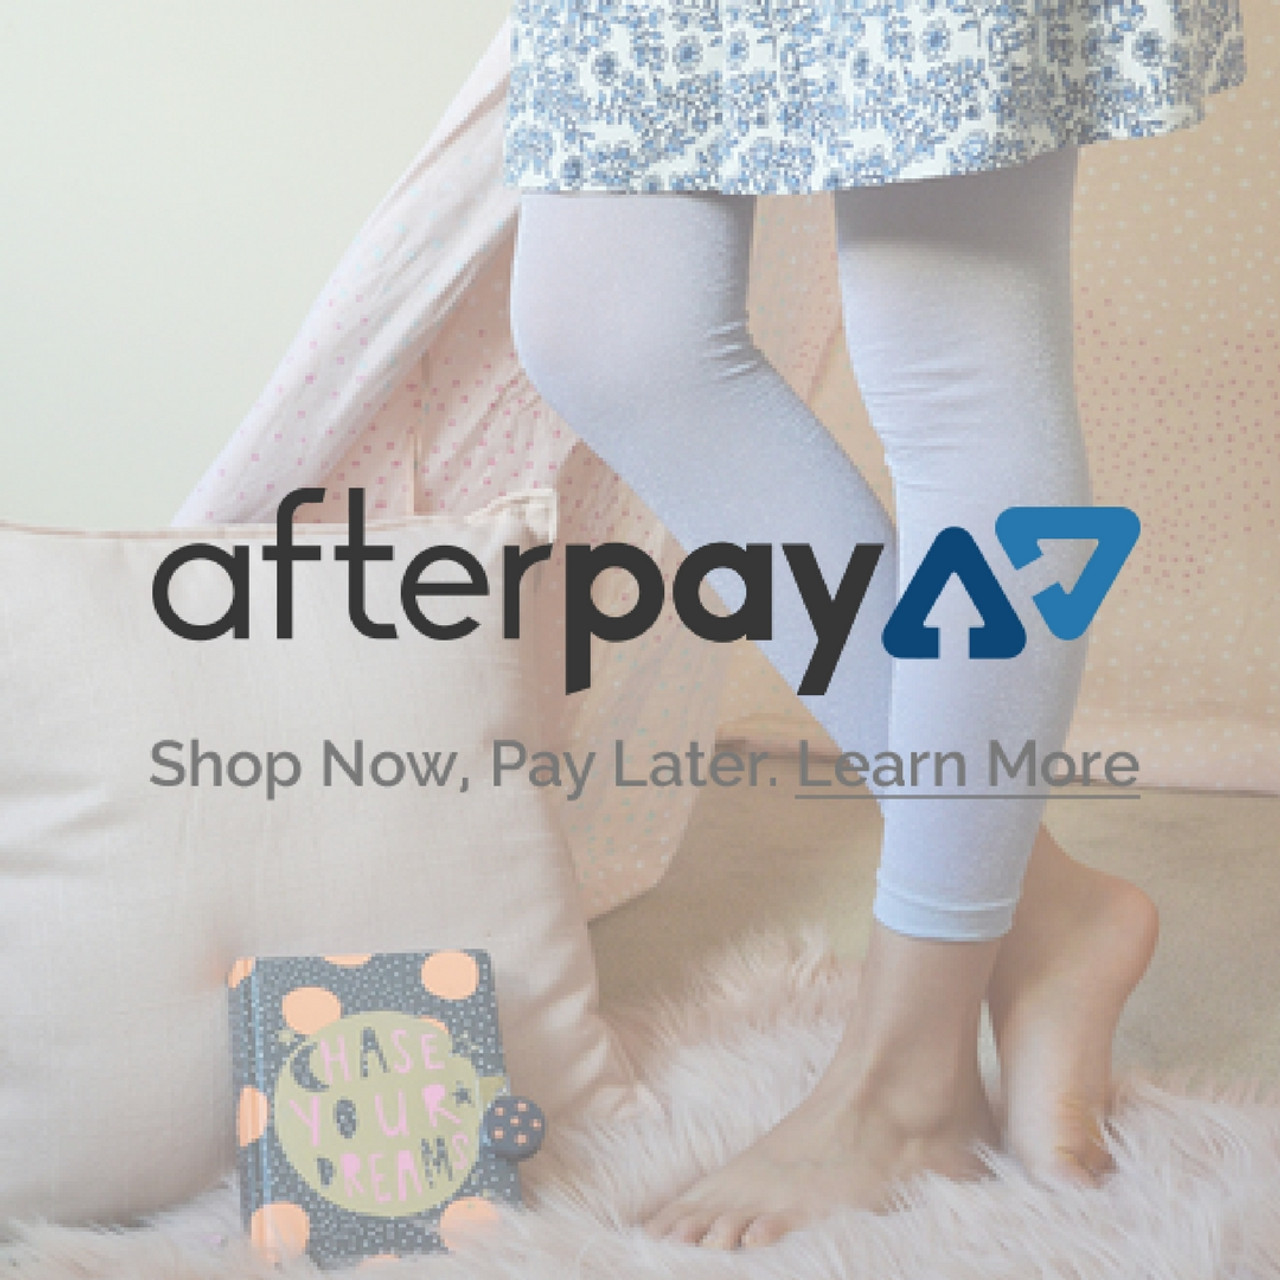 Guess who has partnered with AfterPay?